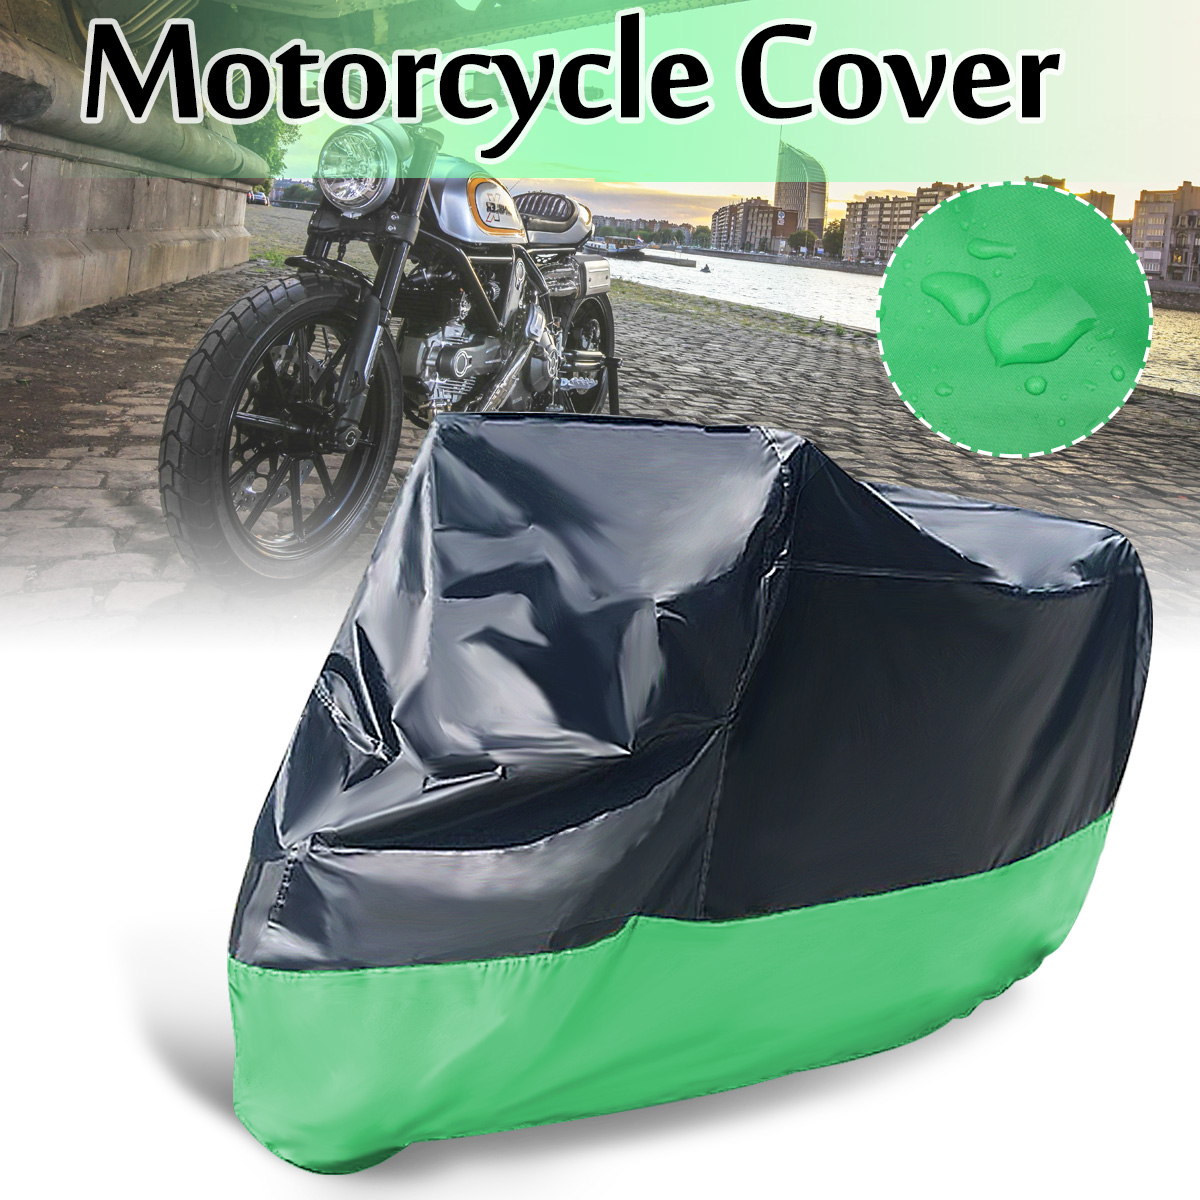 Mofaner Universal Waterproof Motorcycle Cover Sheet Motorbike Moped Scooter Case Cover M XL XXL Mofaner Universal Waterproof Motorcycle Cover Sheet Motorbike Moped Scooter Case Cover M XL XXL